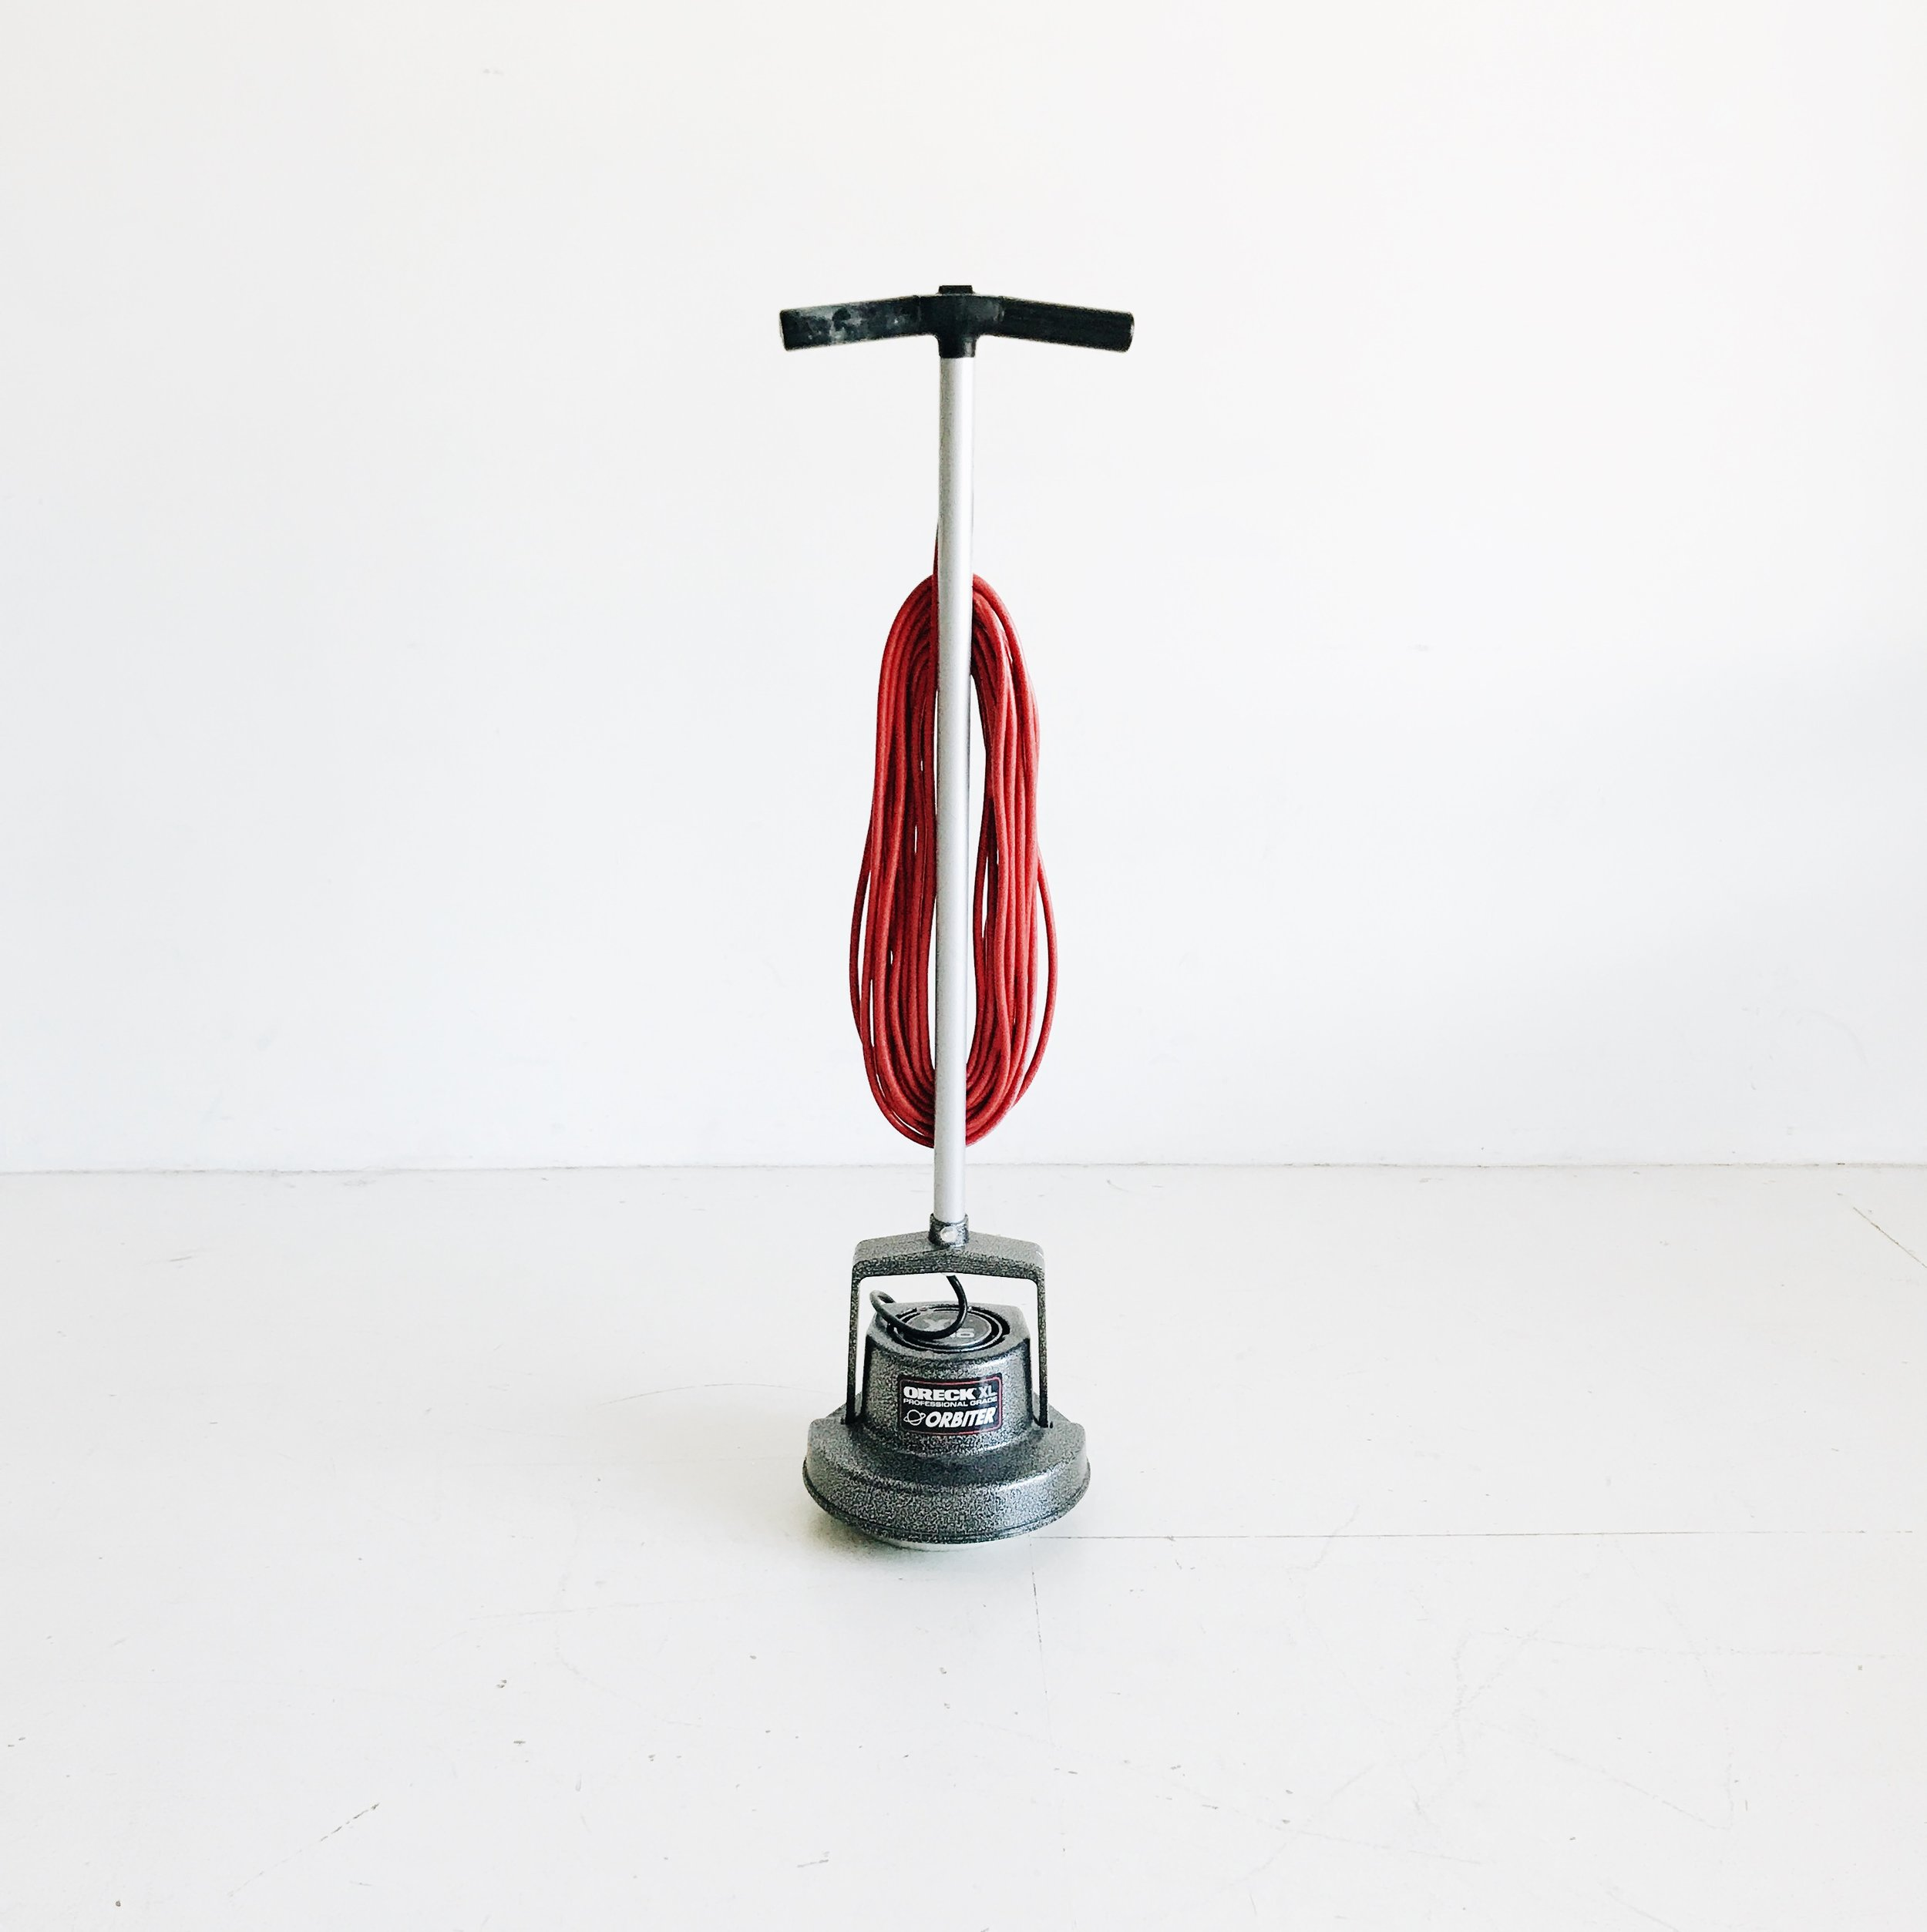 Oreck Professional Grade Floor Buffer   Price: $160 (sells for $400)